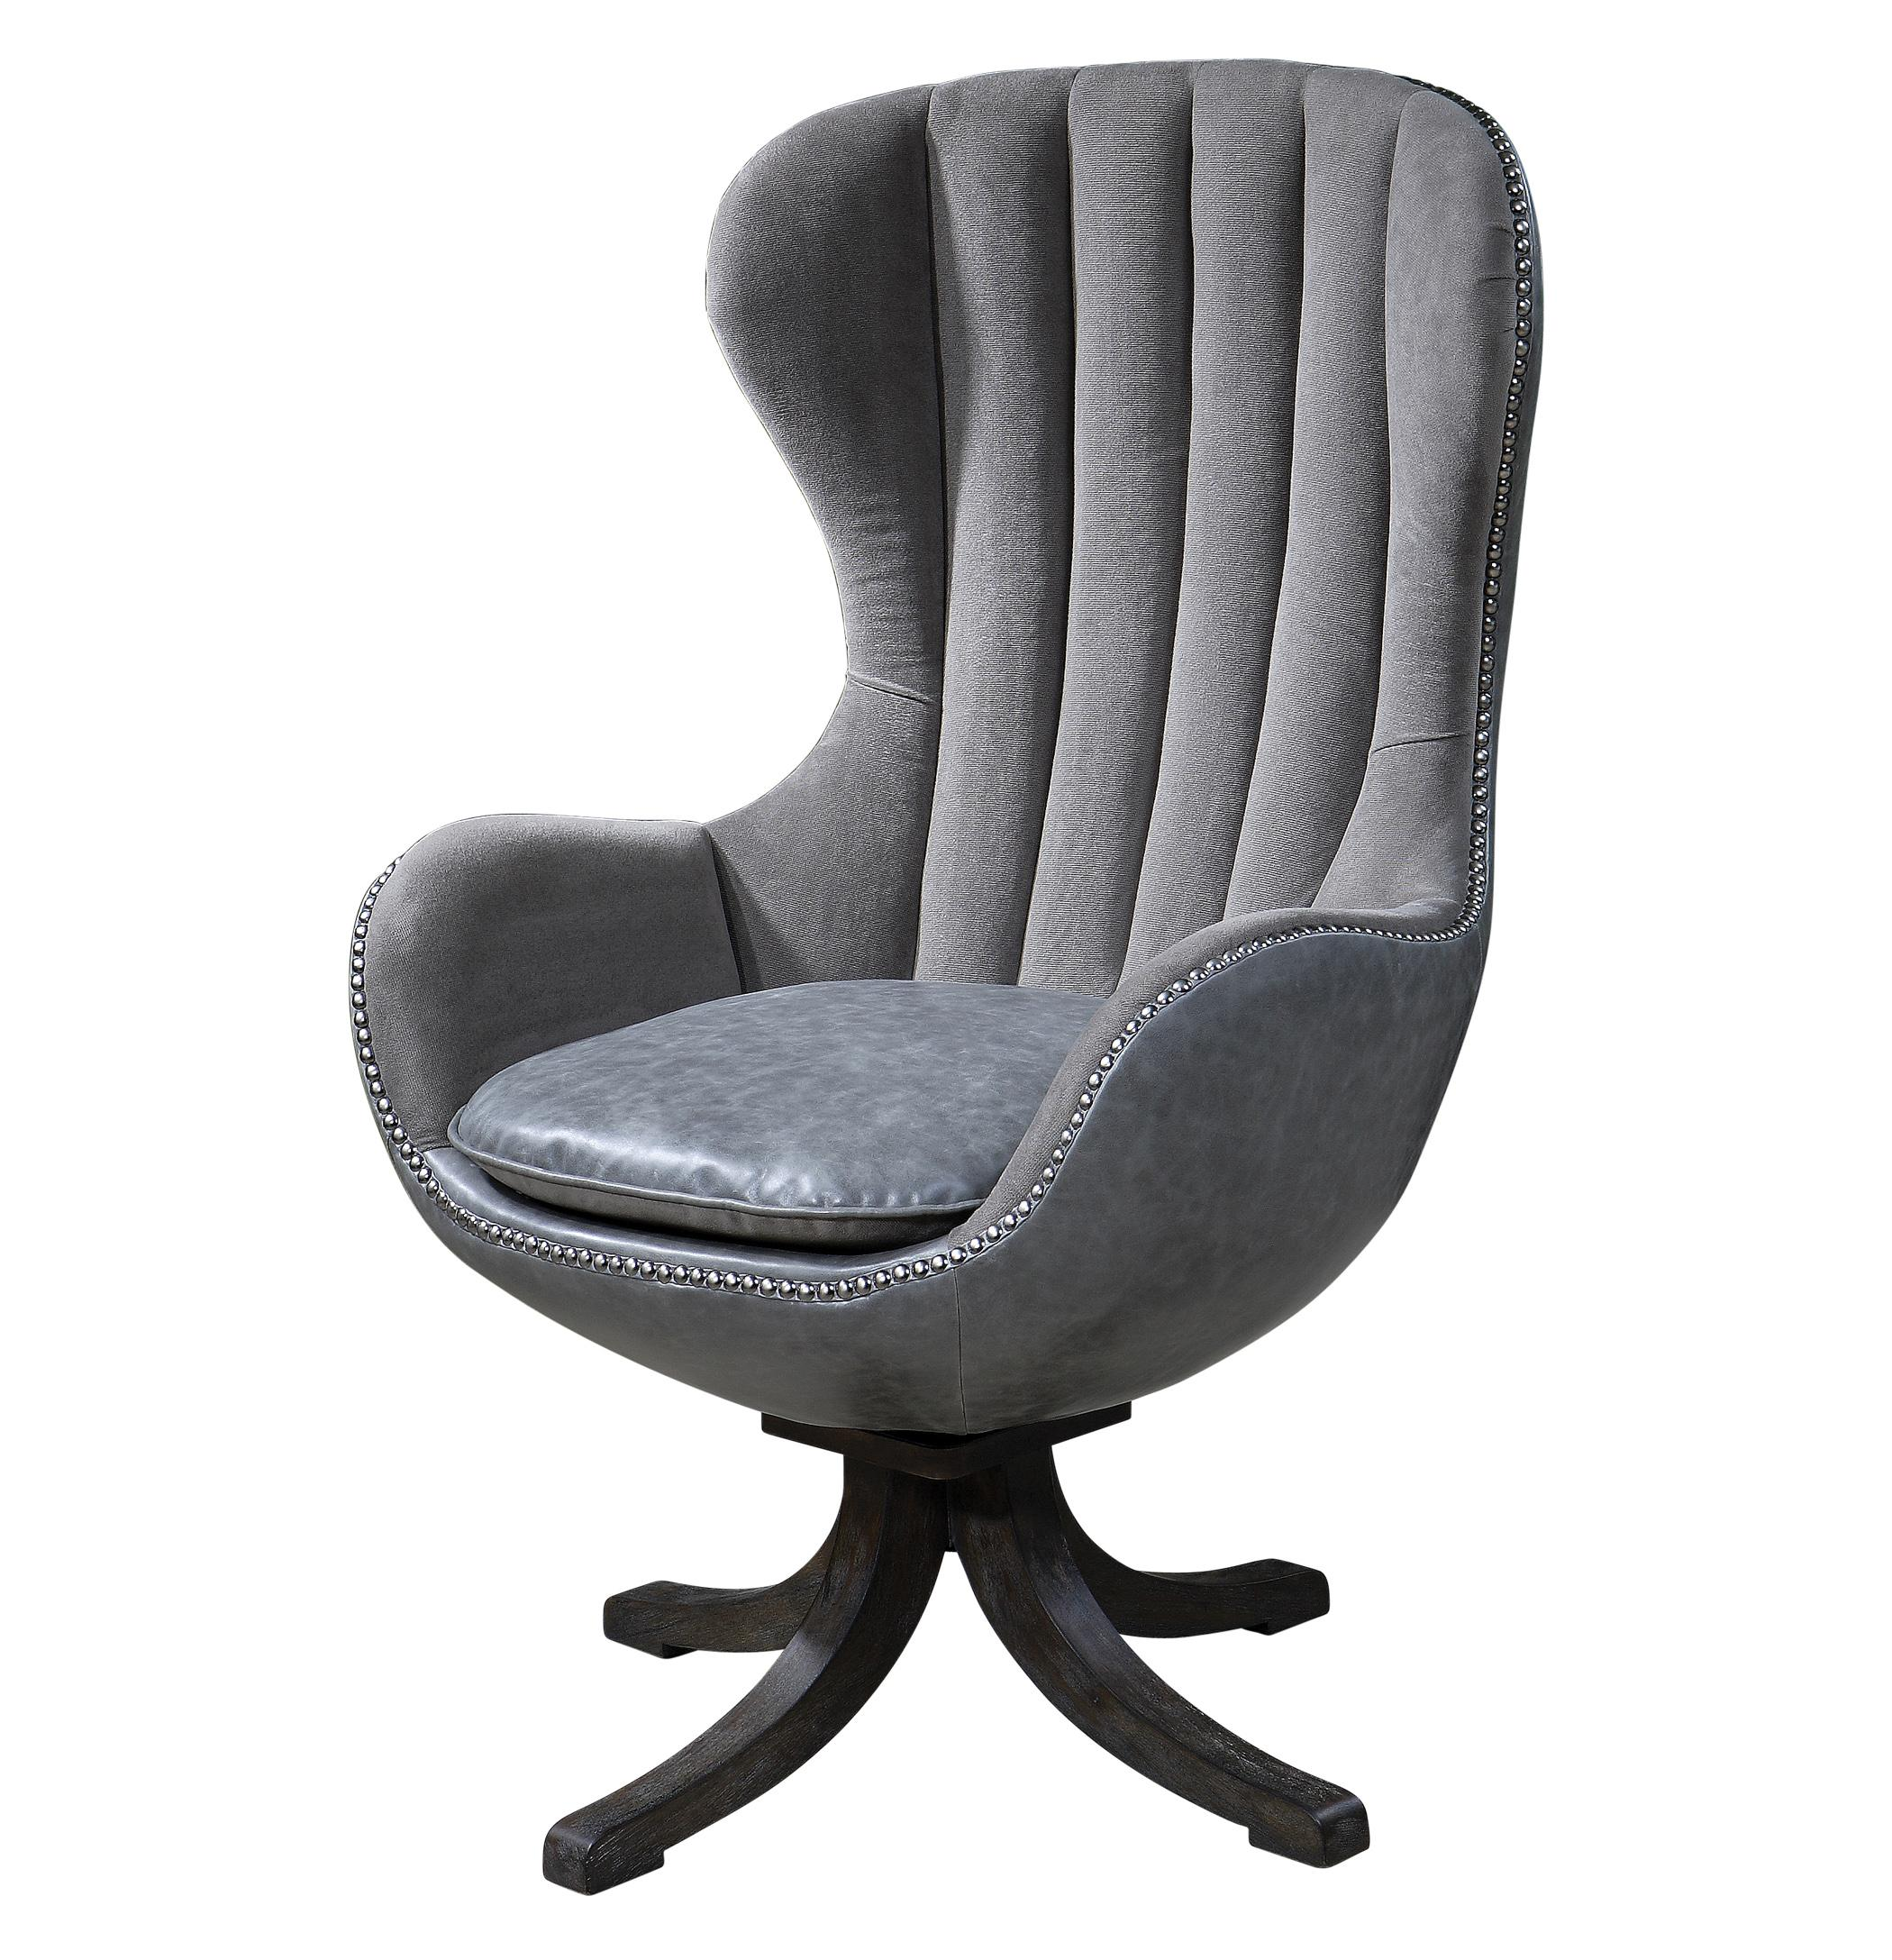 Accent Furniture - Accent Chairs Linford Swivel Chair by Uttermost at Michael Alan Furniture & Design